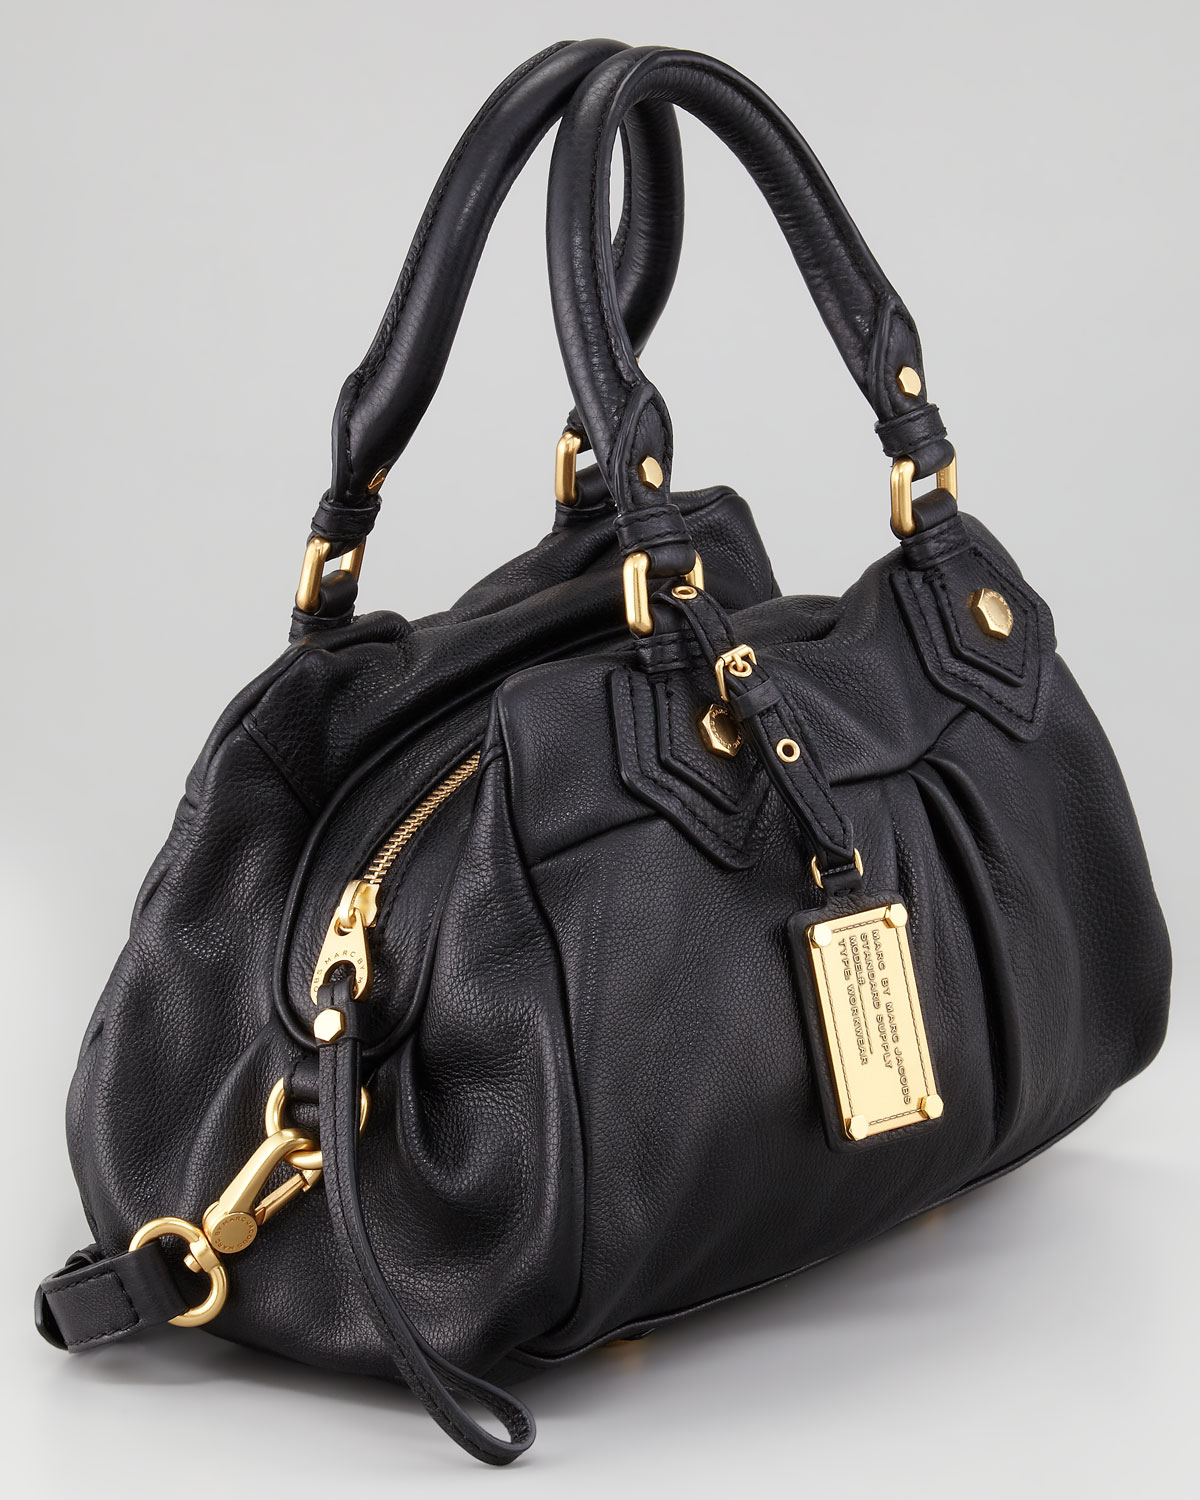 8a3a2487dd Marc By Marc Jacobs Classic Q Baby Groovee Satchel Bag Black in ...